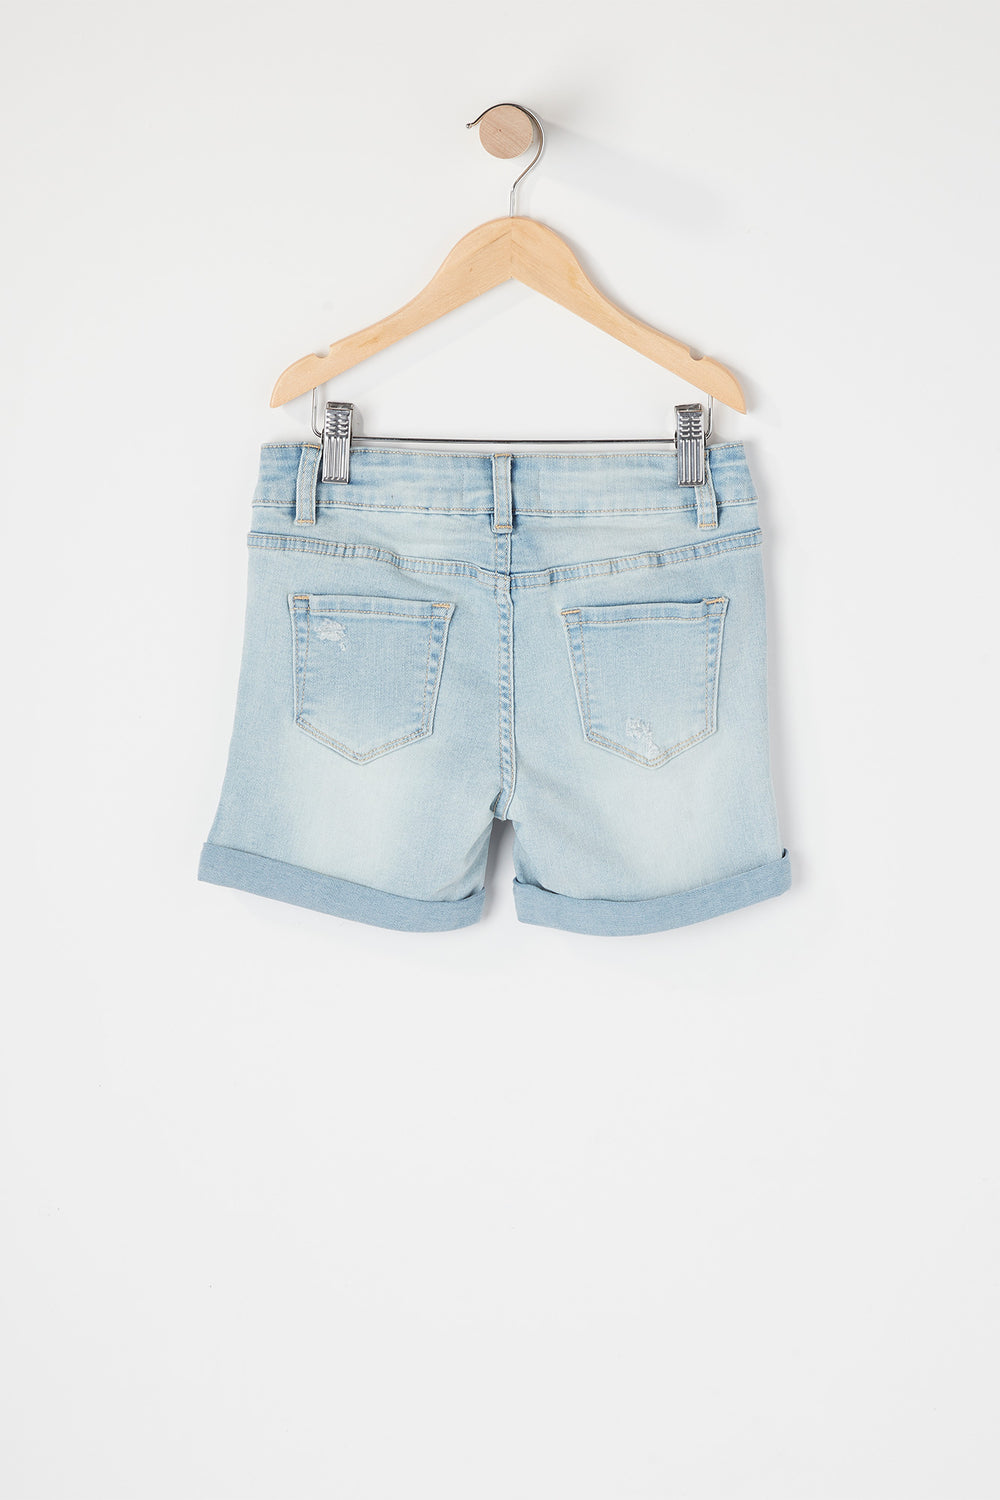 Girls Distressed Midi Short Light Denim Blue